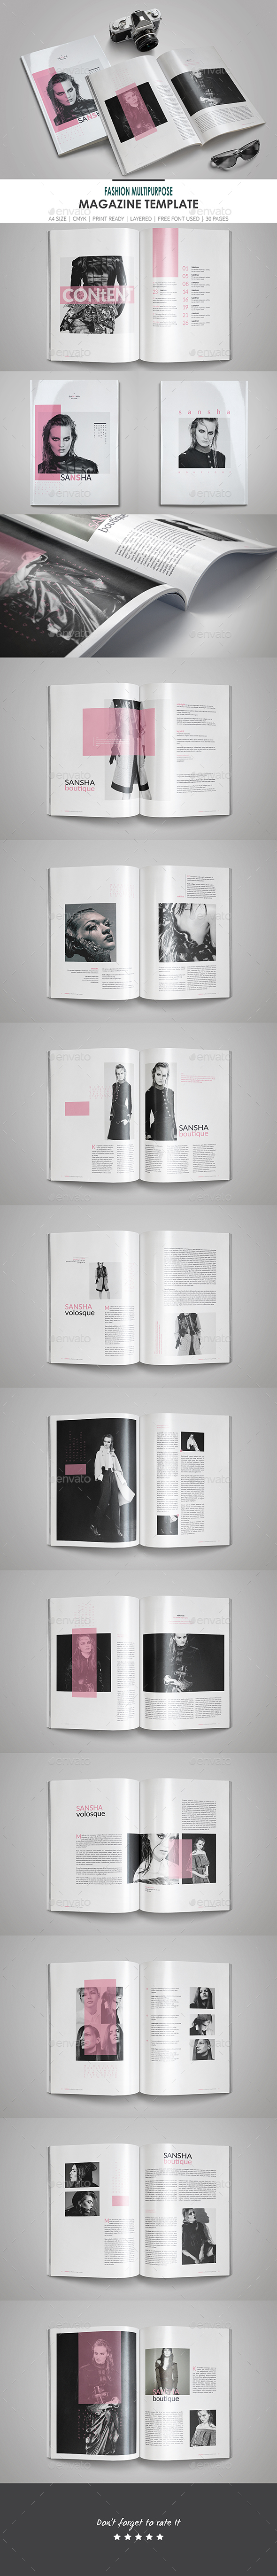 Fashion Multipurpose Magazine Template - Magazines Print Templates